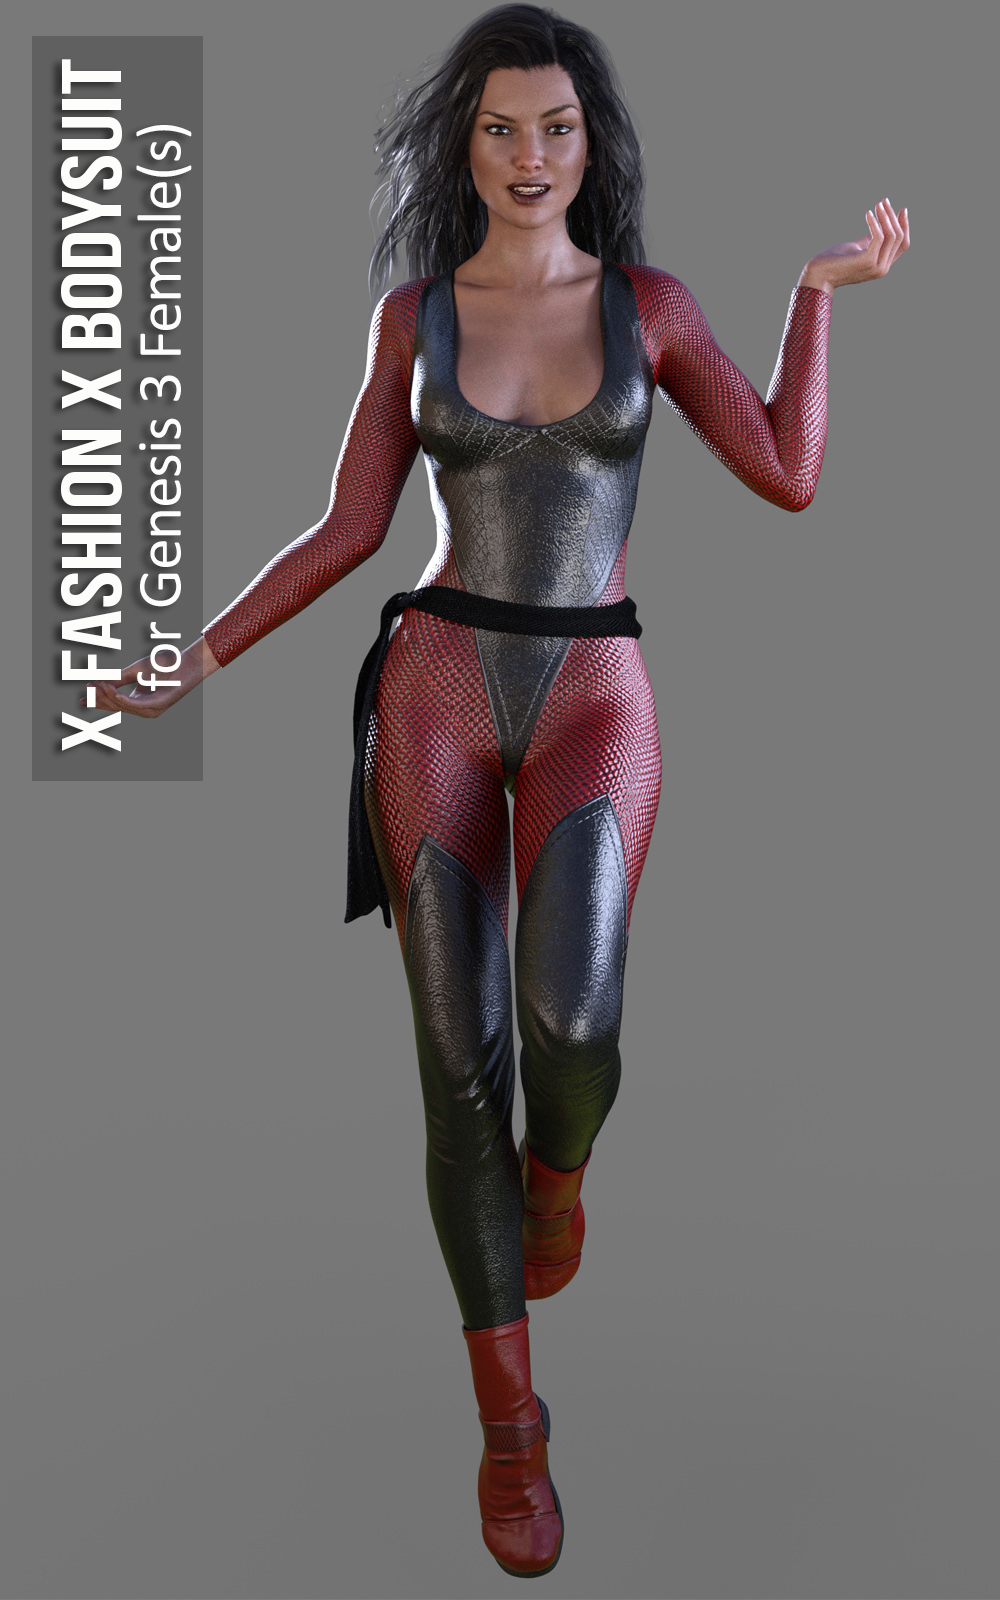 3D Figure Assets • Clothing · X-Fashion X Bodysuit for Genesis 3 Females ·  Previous Next 6bd586cc8